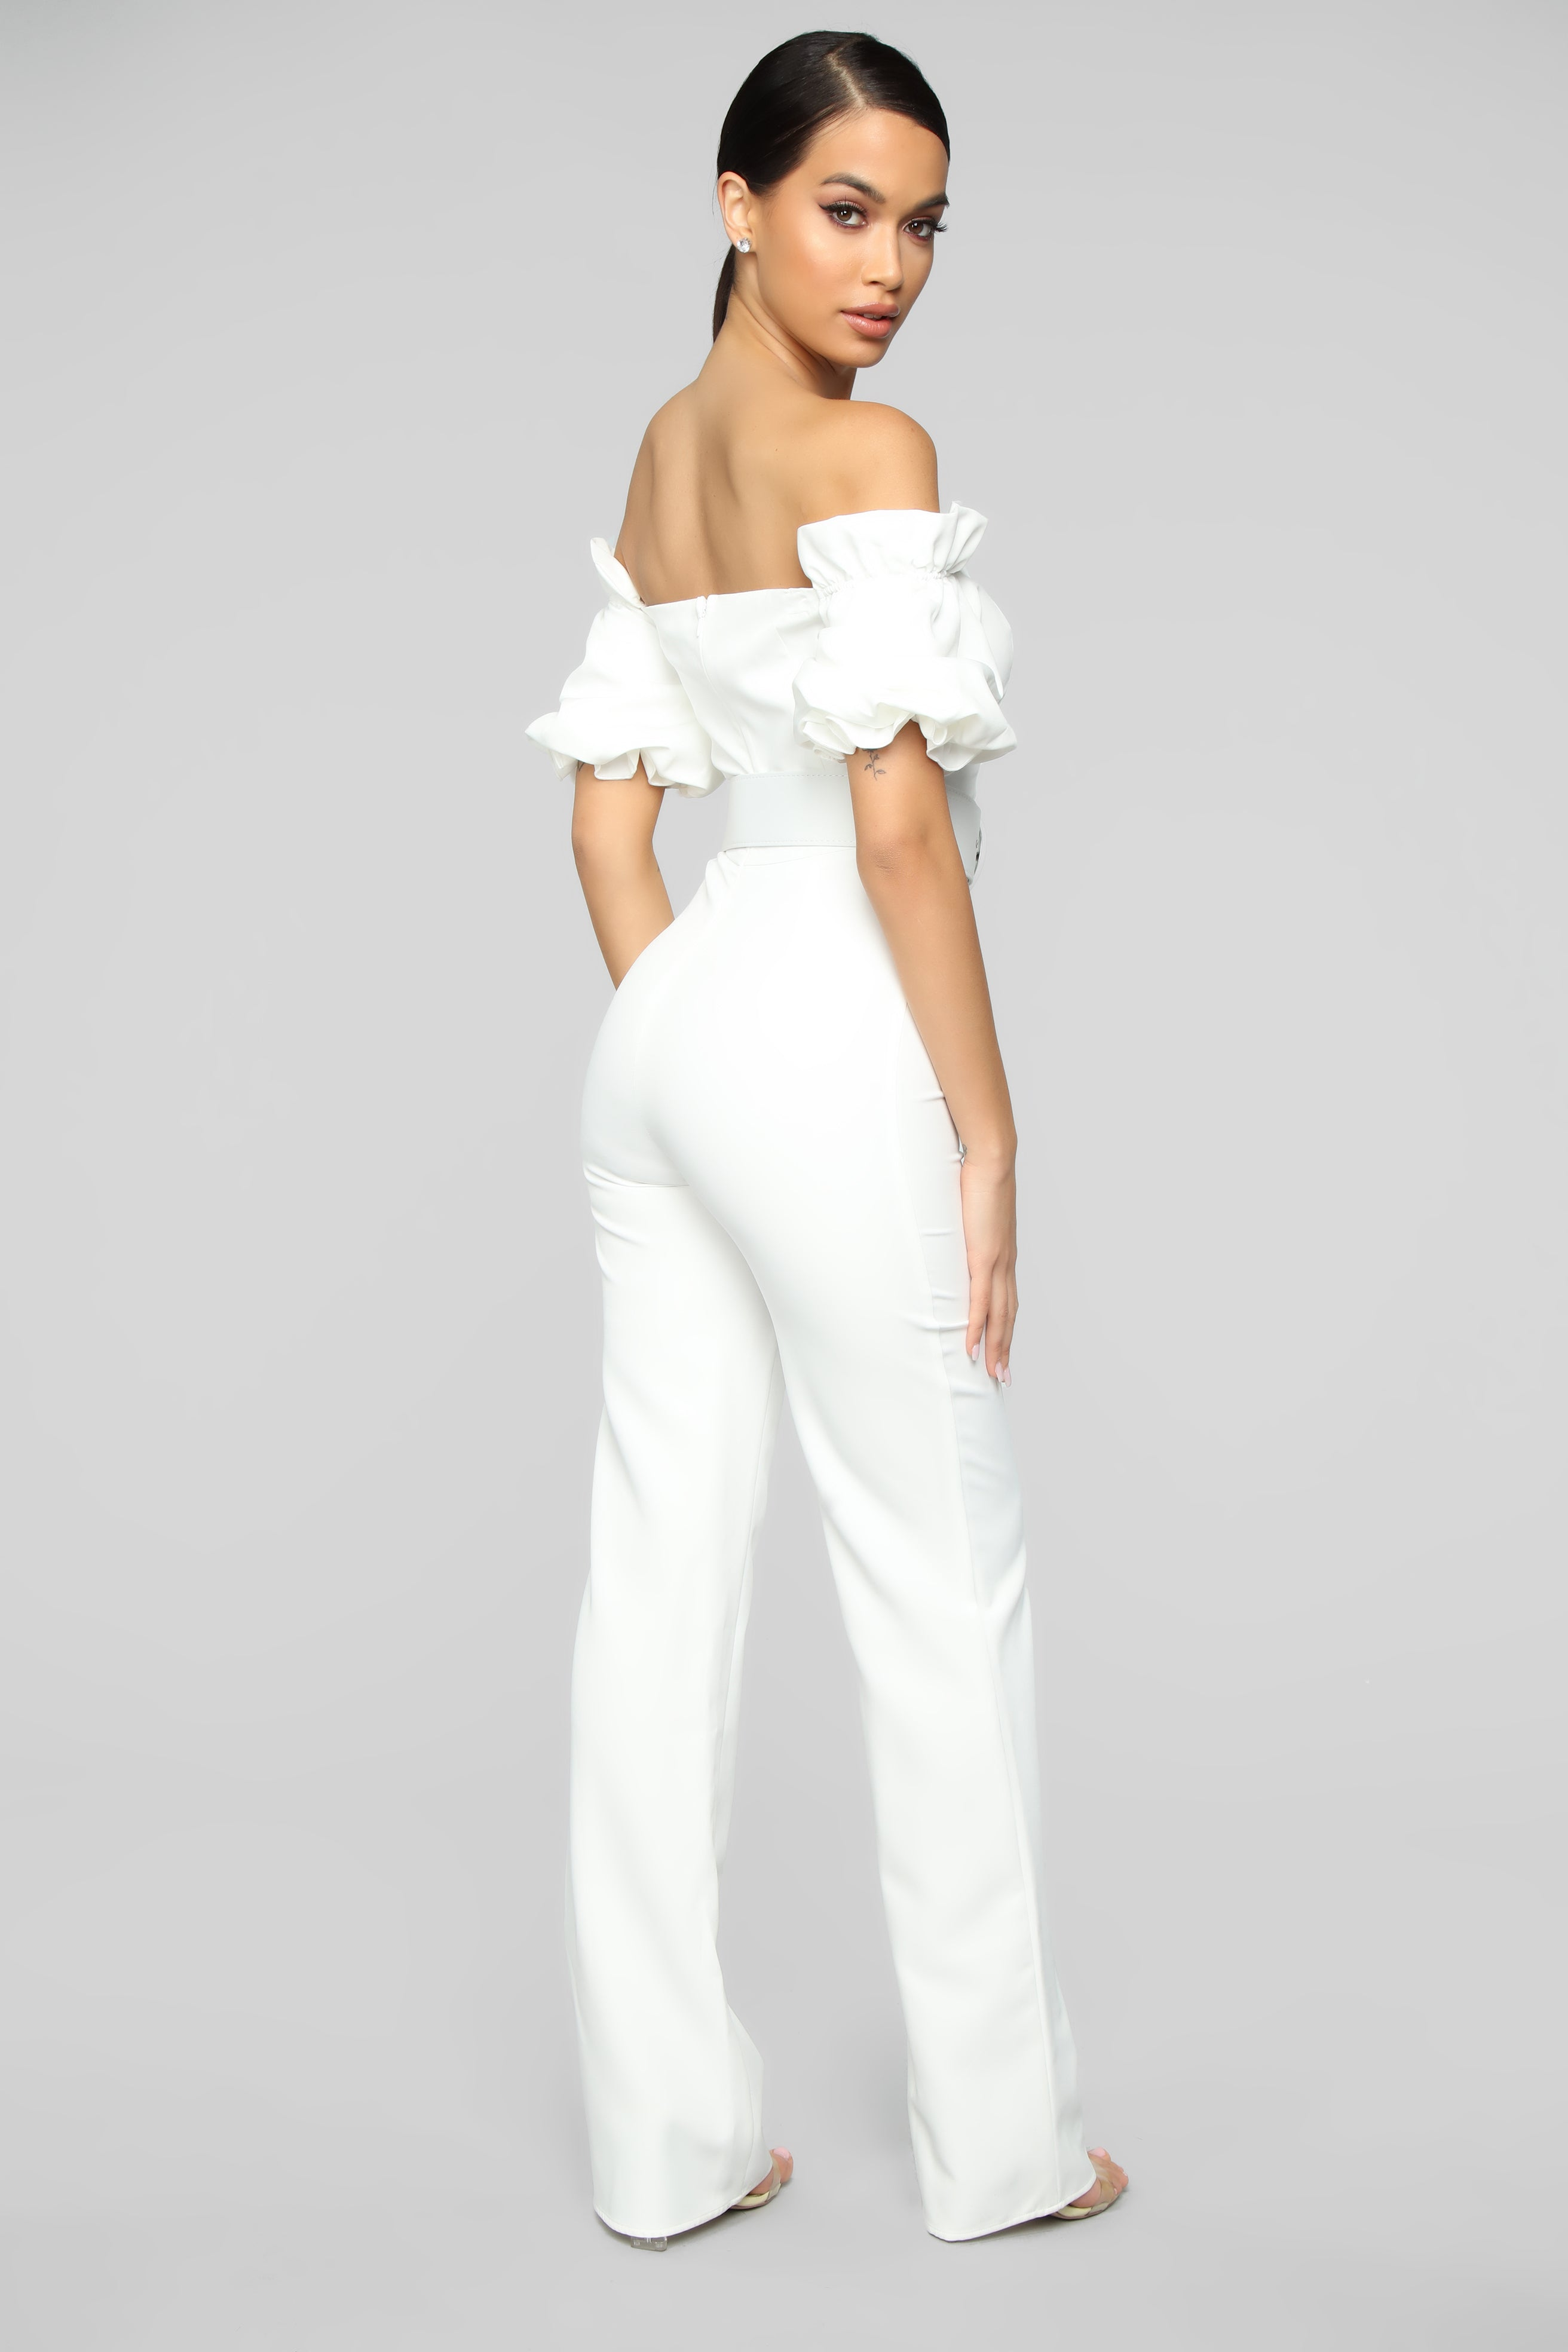 0ddad8588023 Off Topic Puff Sleeve Jumpsuit - White